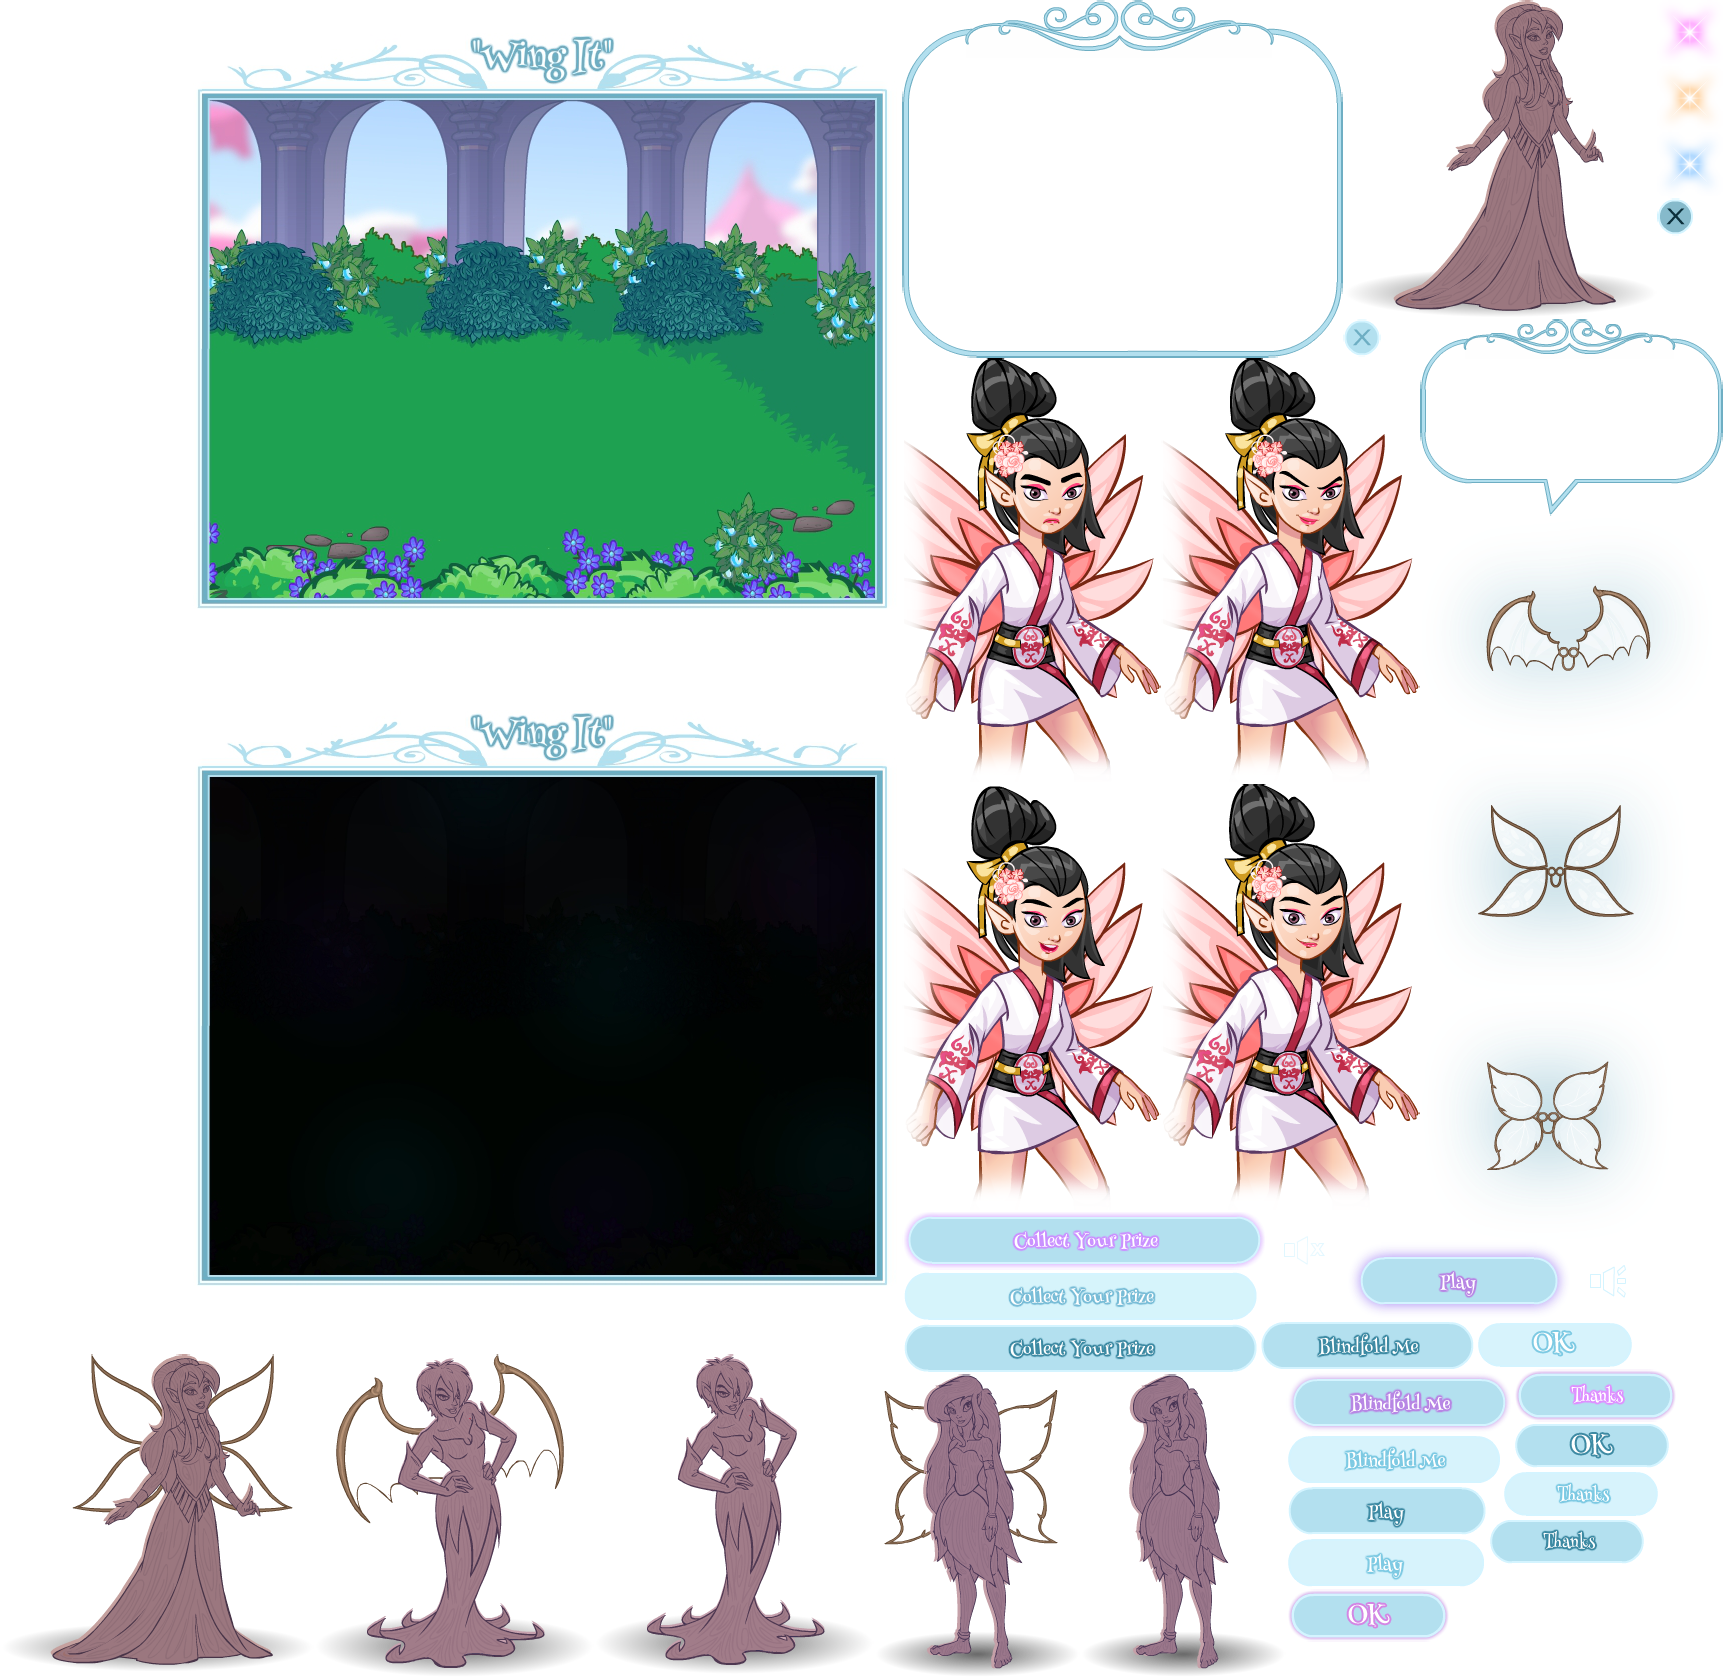 http://images.neopets.com/games/wingit/ptw_spritesheet.png